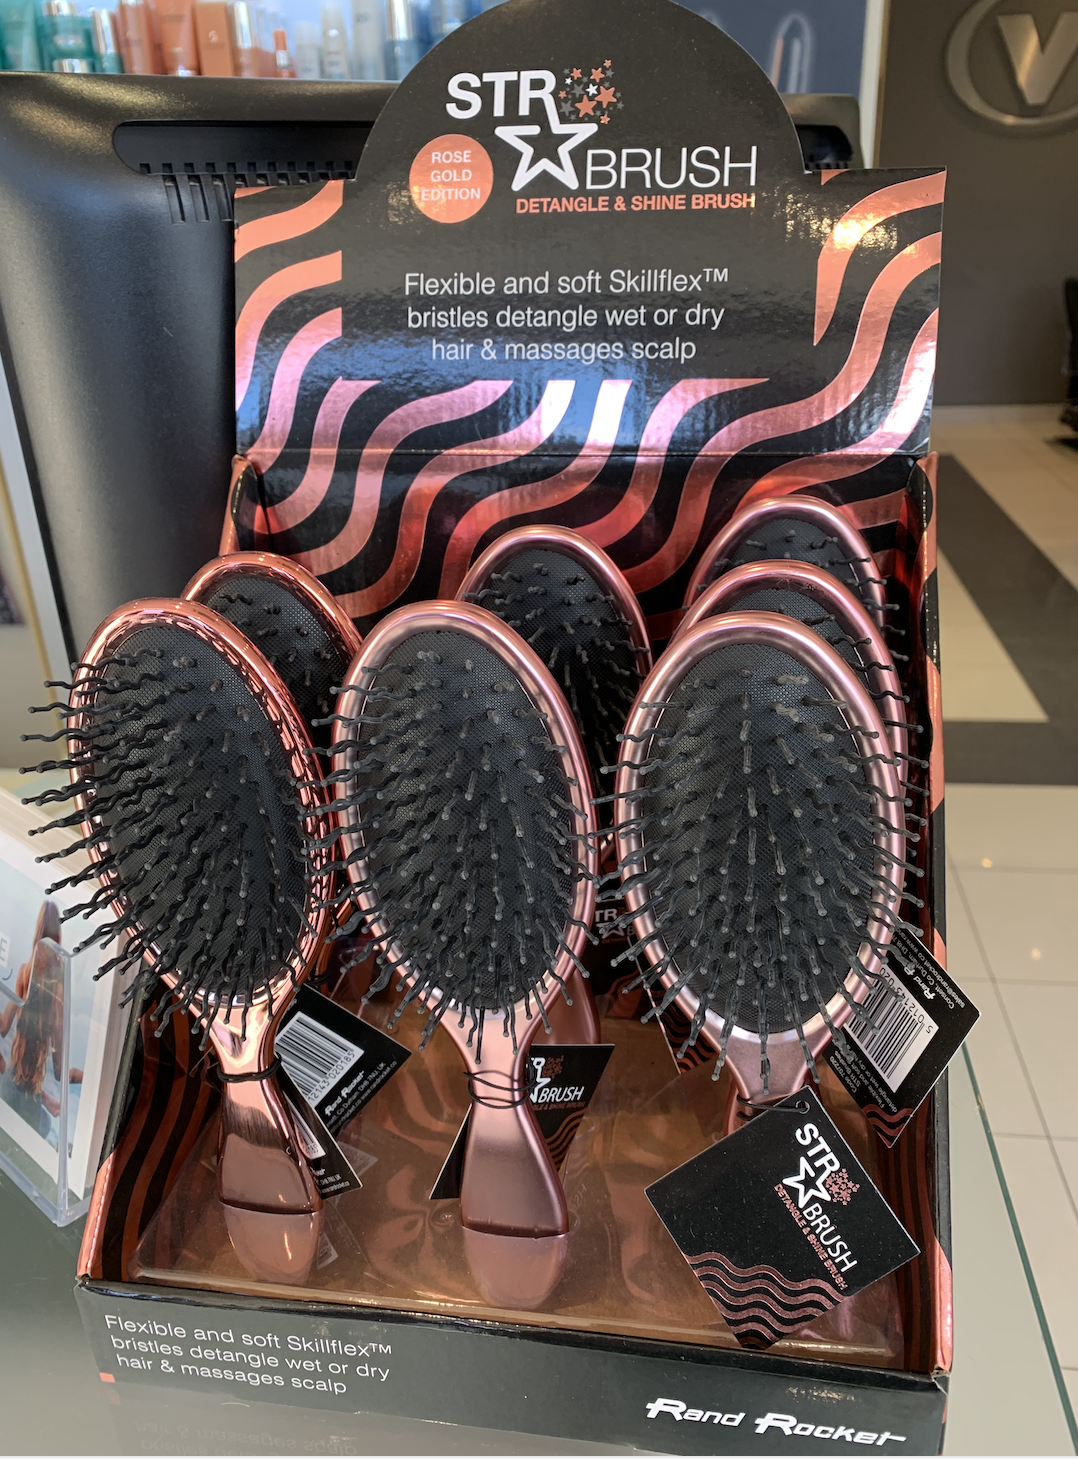 str-brush-christmas-gift-vision-hairdressing-gerrards-cross